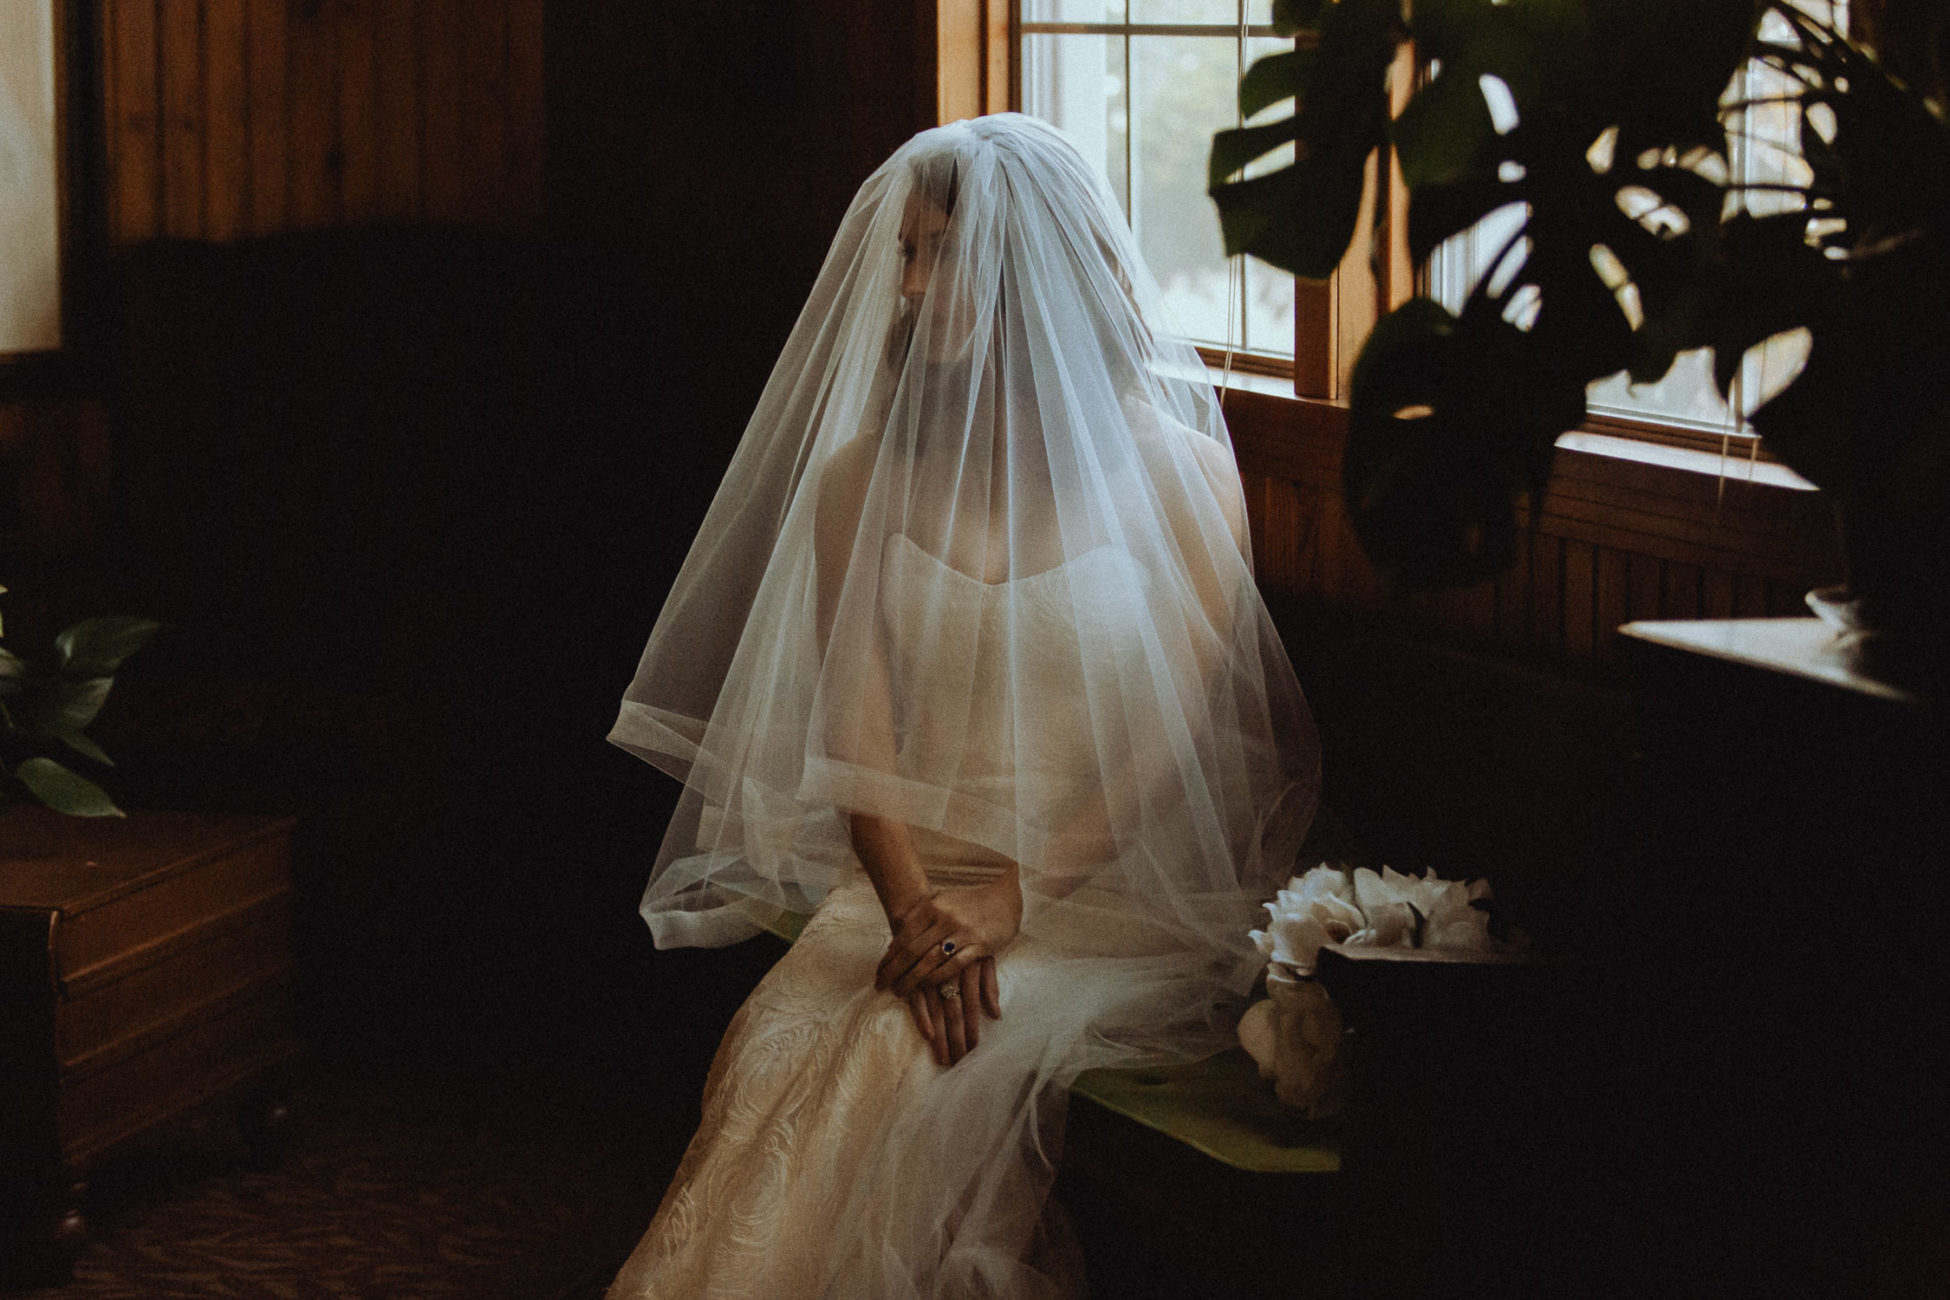 Bride covered in veil sitting alone in the dark